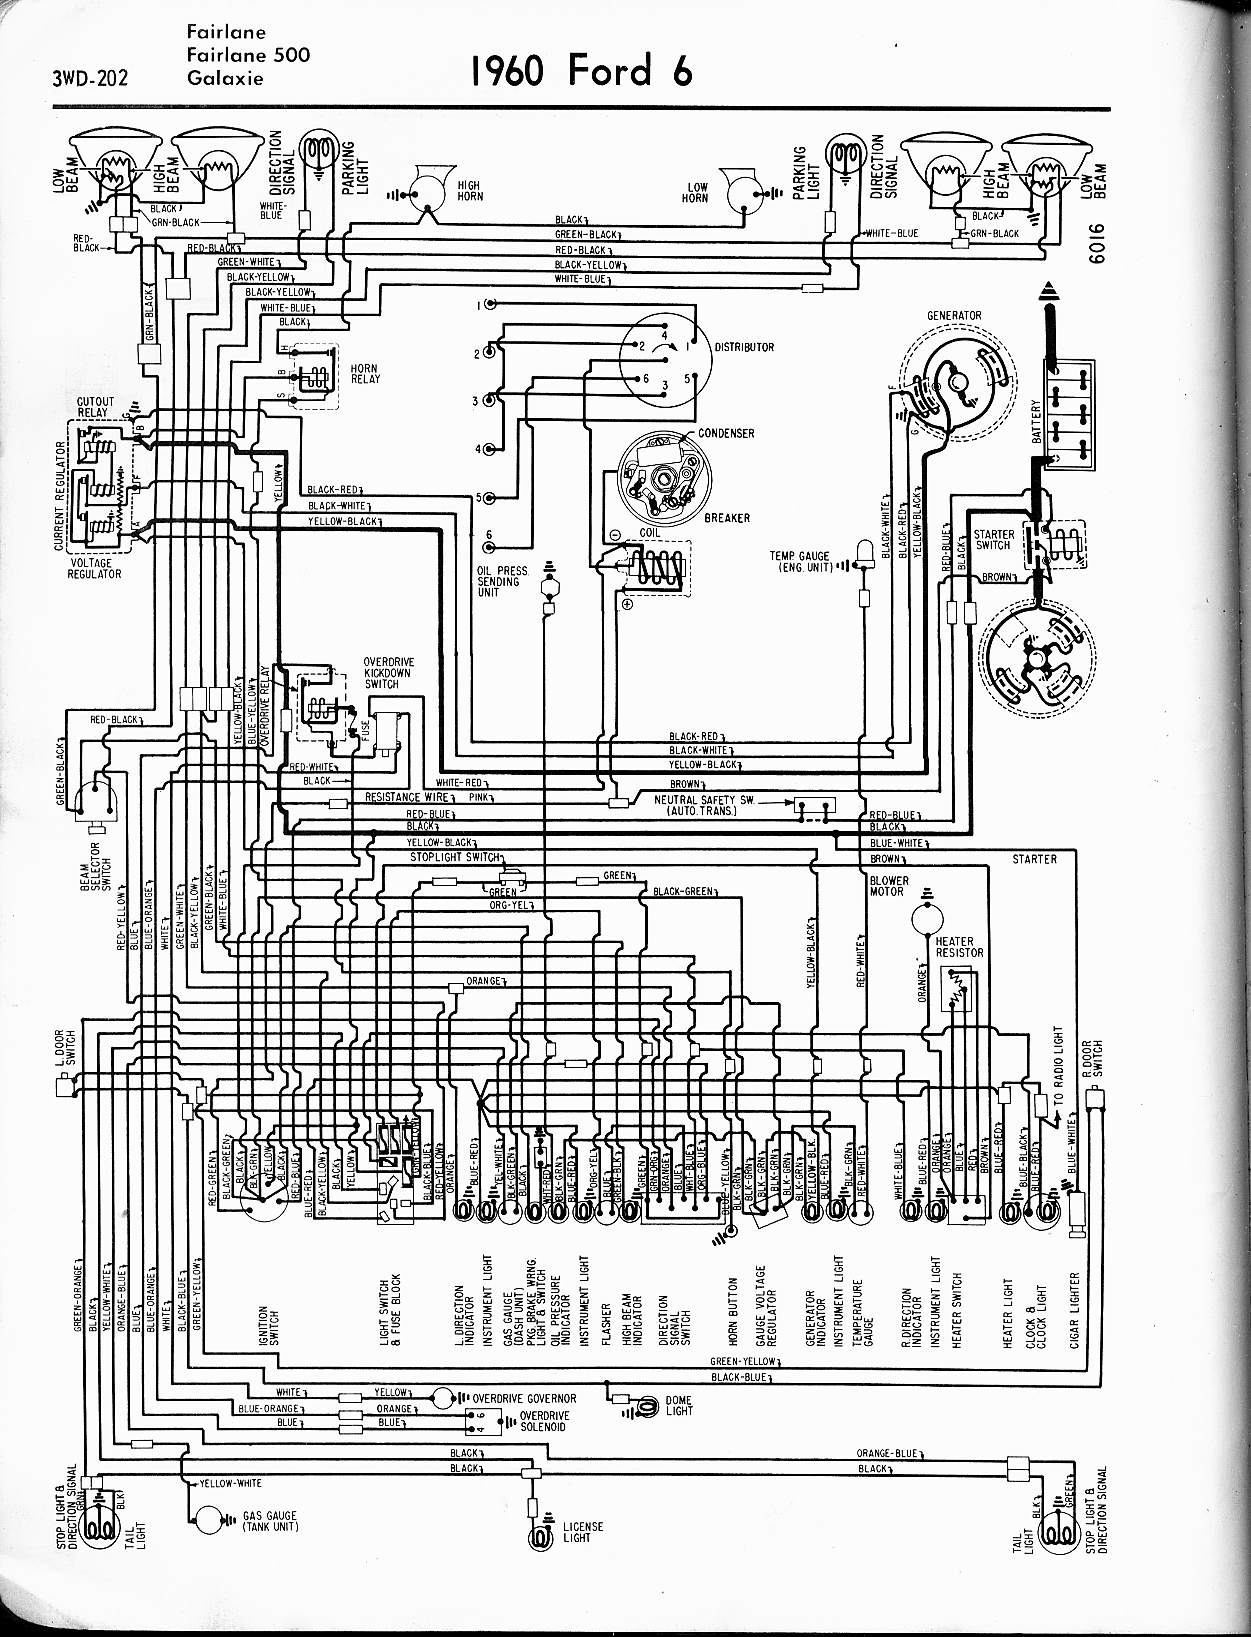 MWire5765 202 57 65 ford wiring diagrams ford truck wiring harness at soozxer.org